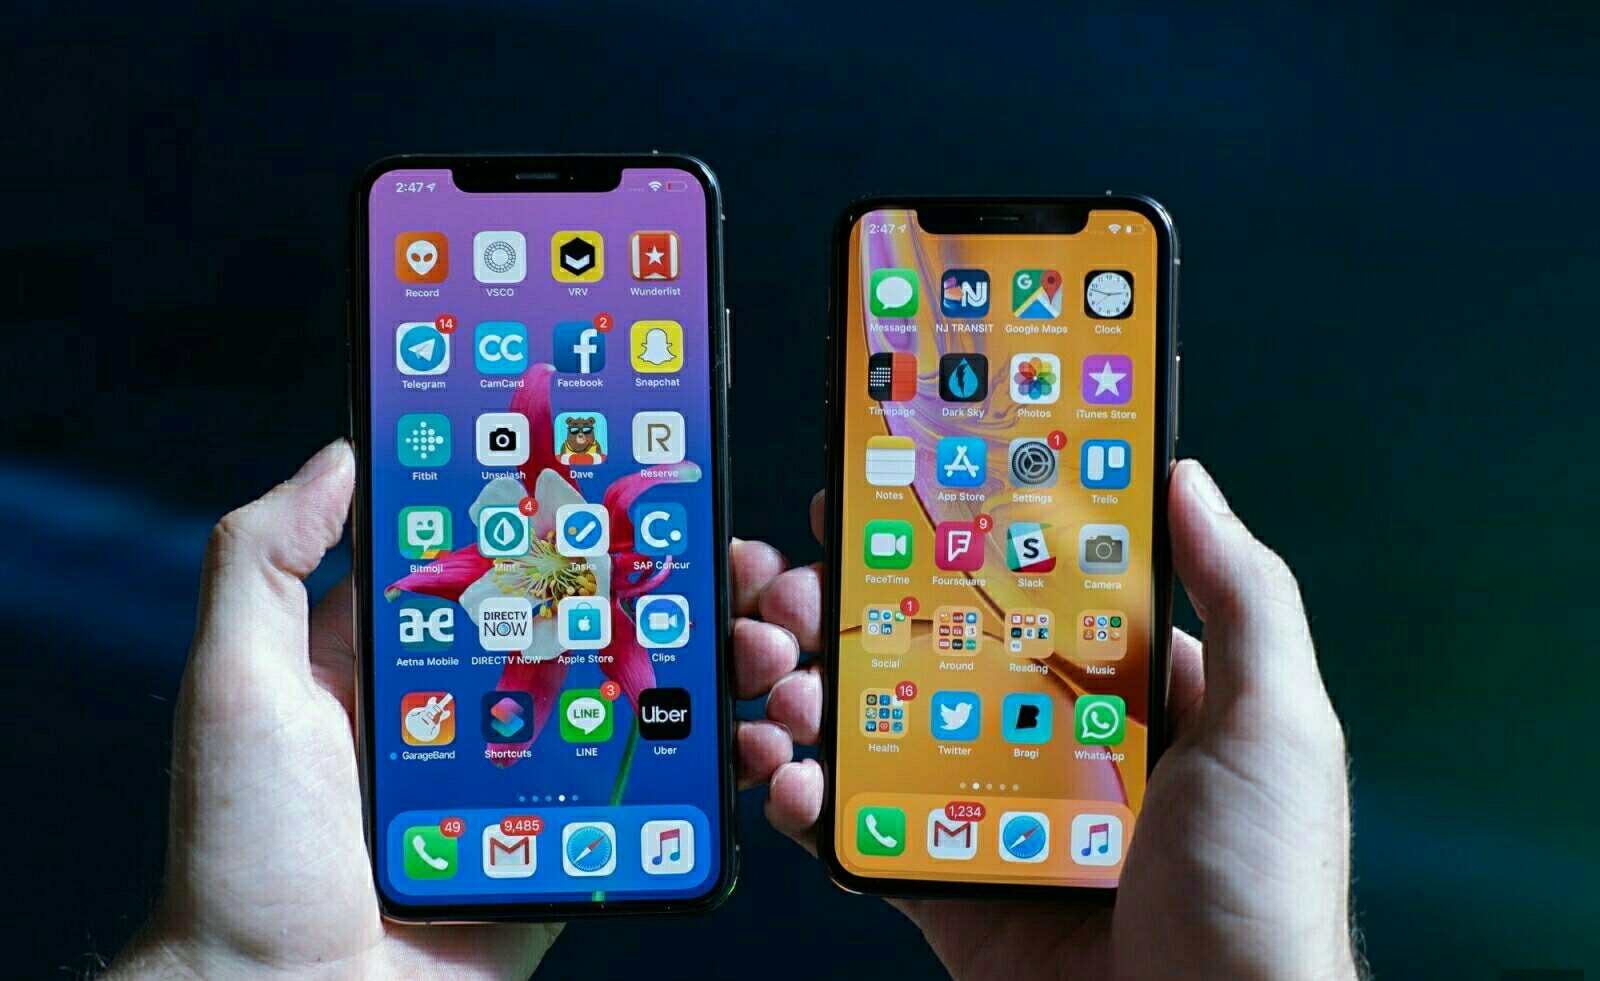 Apple might launch its first 5G iPhone in 2020